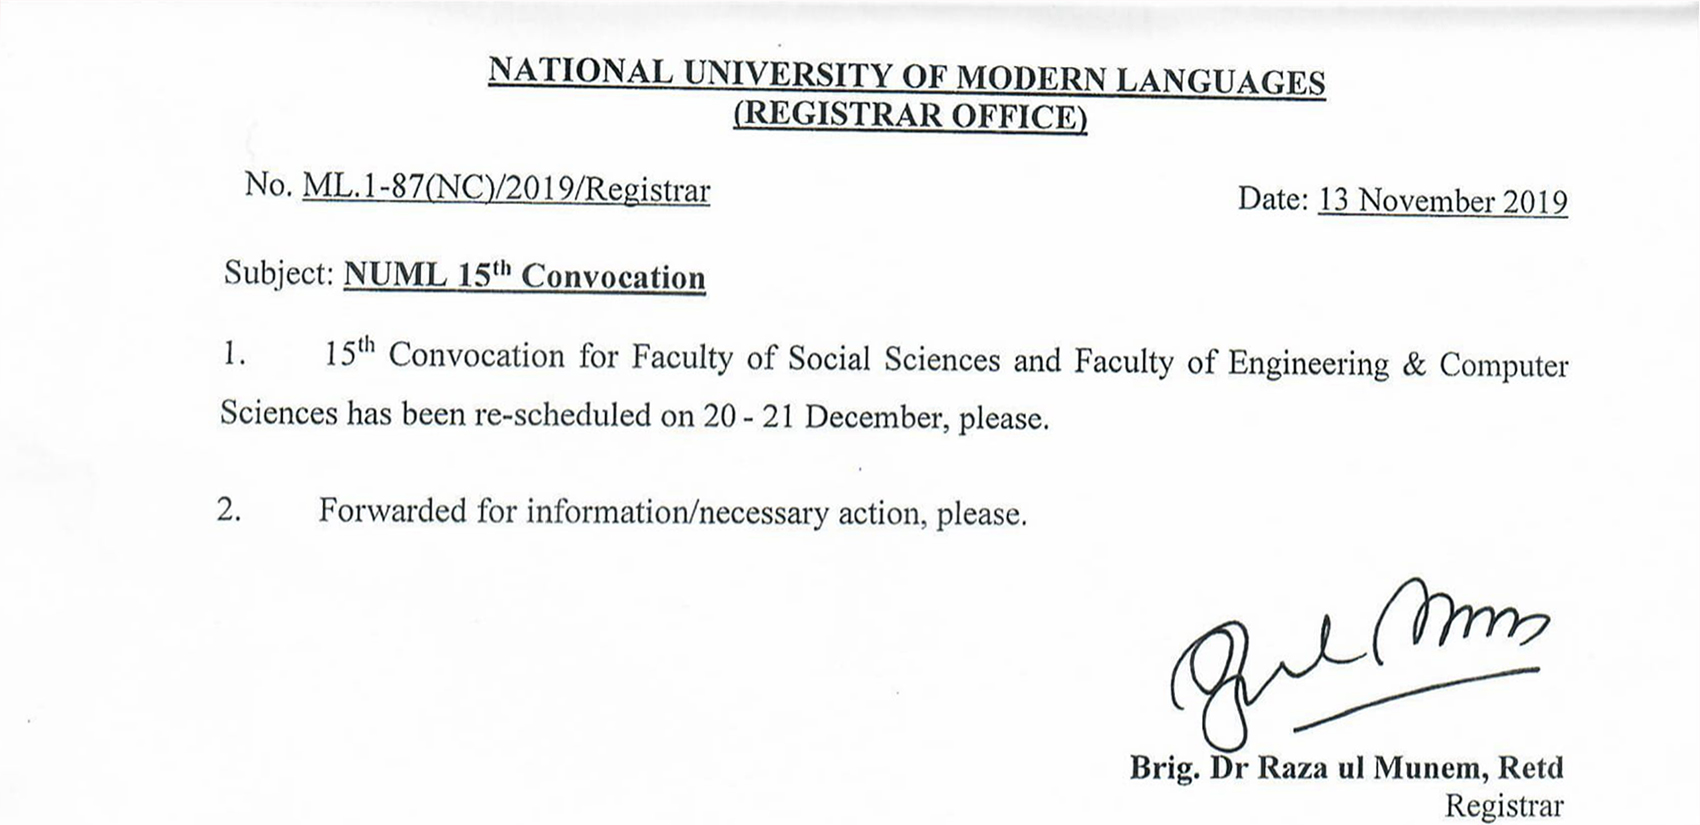 NUML 15th Convocation (Rescheduled)